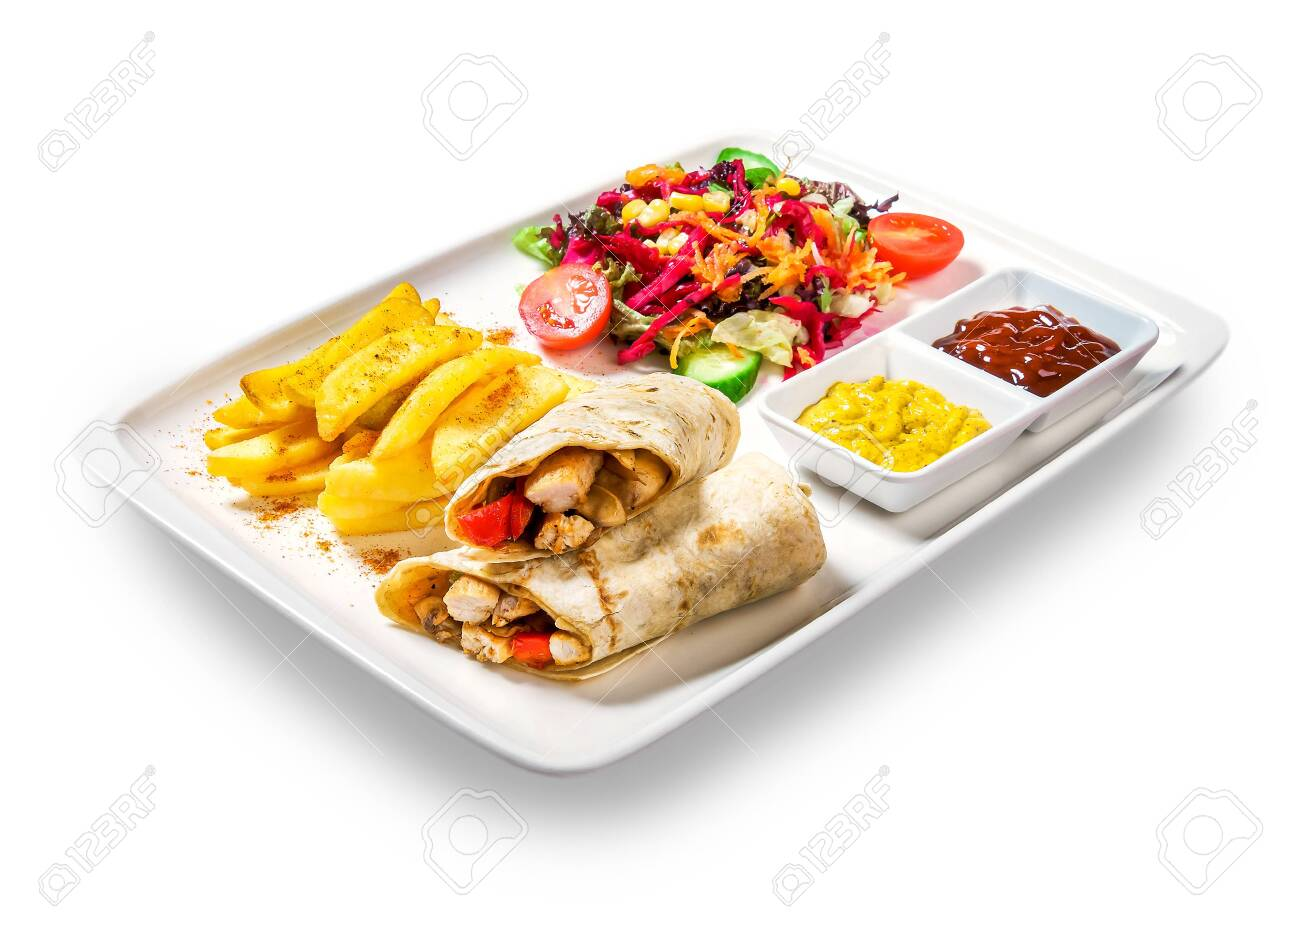 sandwiches (rolls with meat) with fries, vegetables and sauce in plate on white background - 120934483